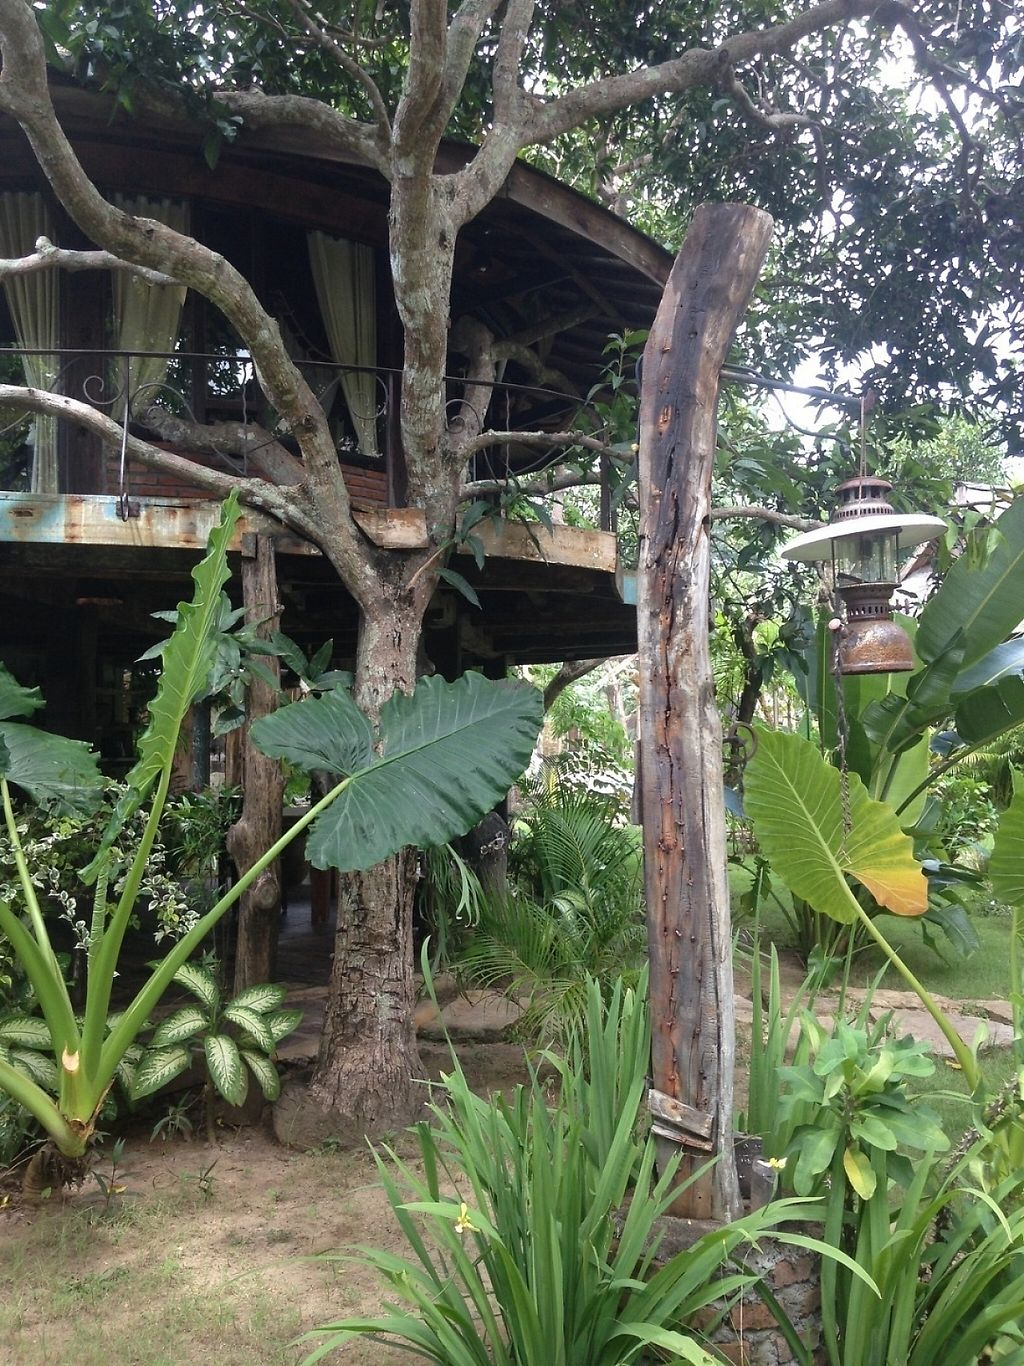 "Photo of The Alchemist Restaurant and Ecolodge  by <a href=""/members/profile/JuliasJourney"">JuliasJourney</a> <br/>Treehouses <br/> December 30, 2016  - <a href='/contact/abuse/image/84579/206154'>Report</a>"